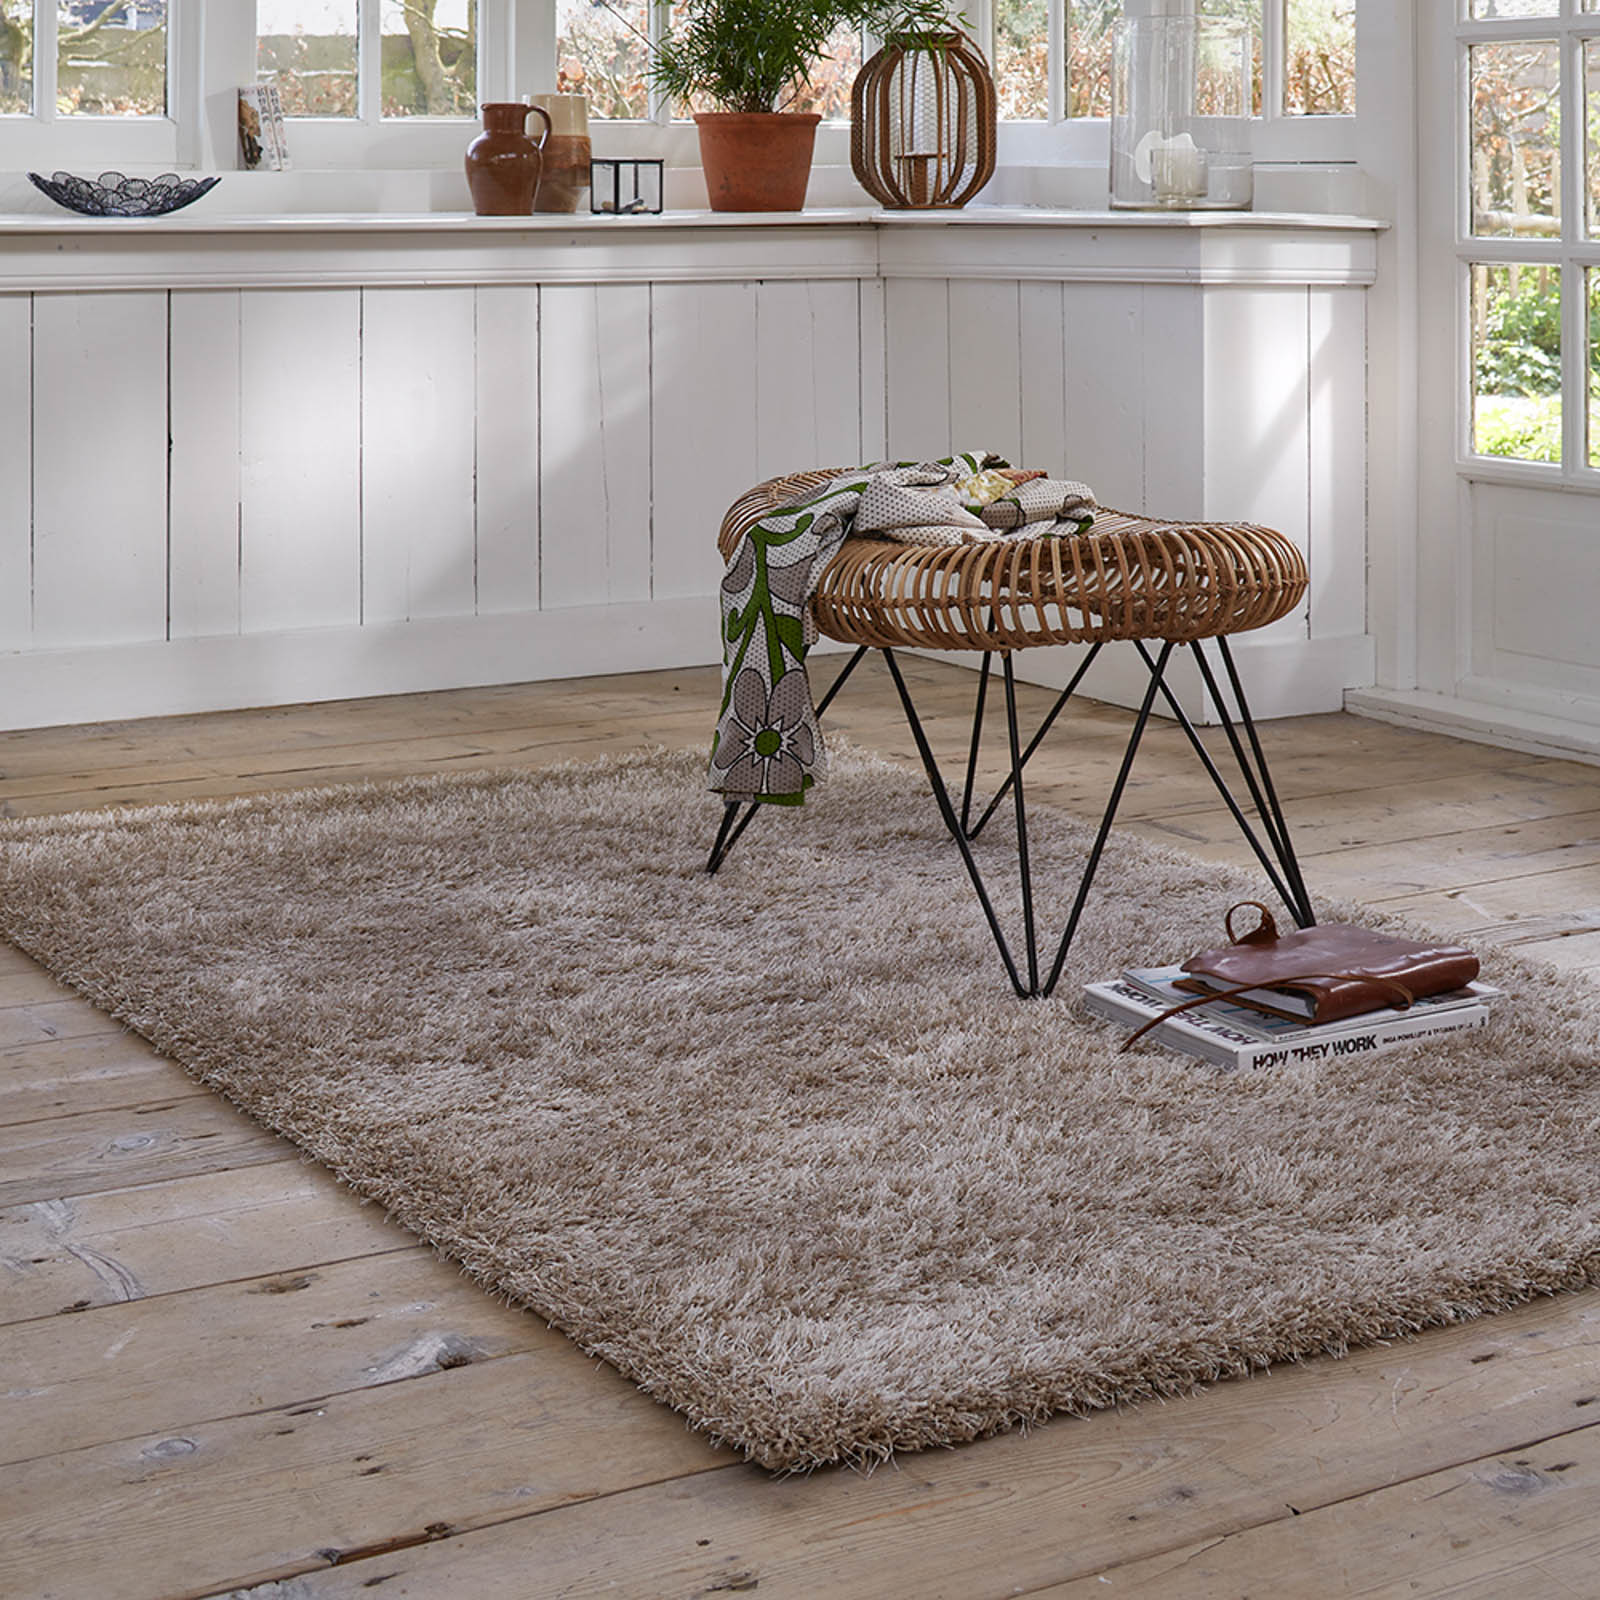 Esprit Cosy Glamour Rugs 0400 70 Sand